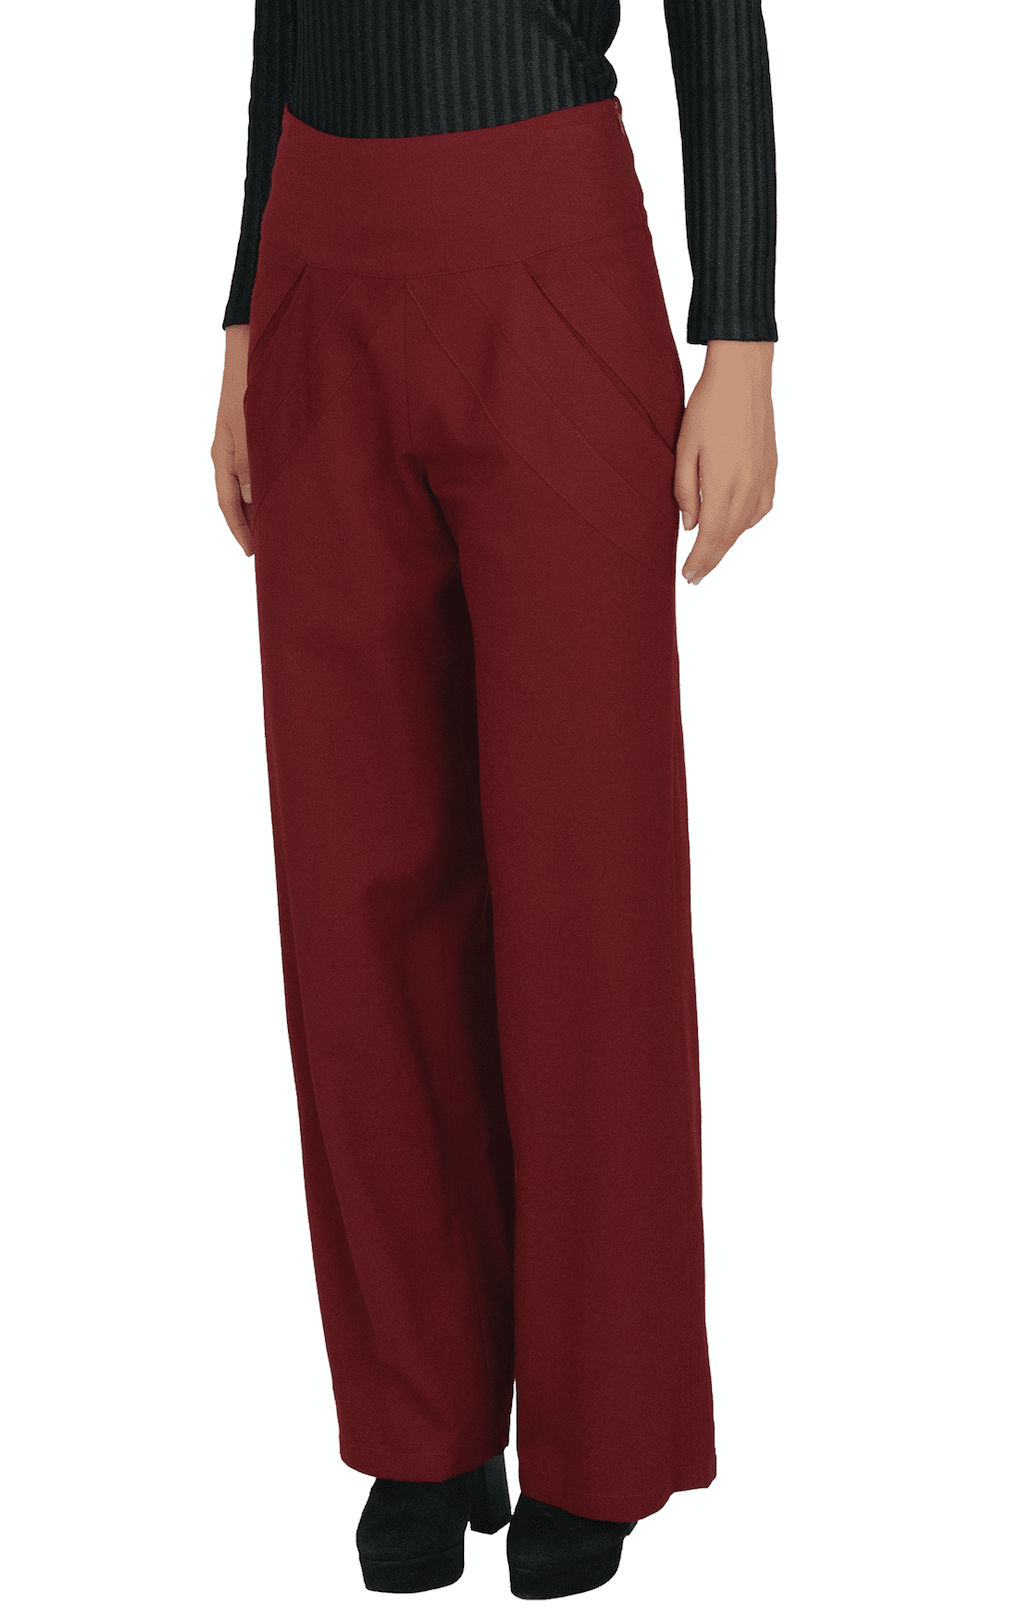 Trousers ANTARES 1